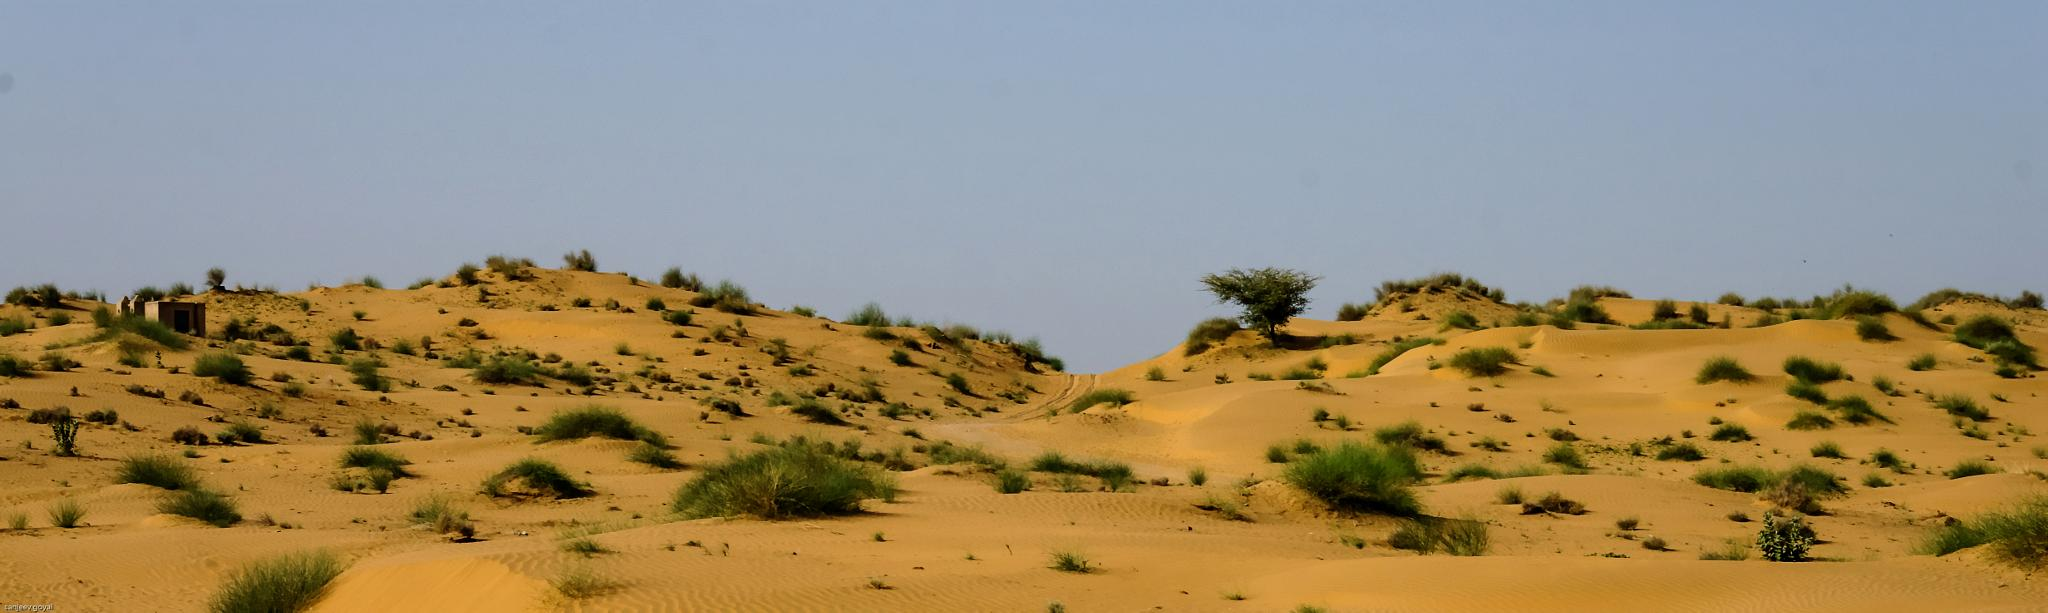 Desert by sanjeev.k.goyal.10